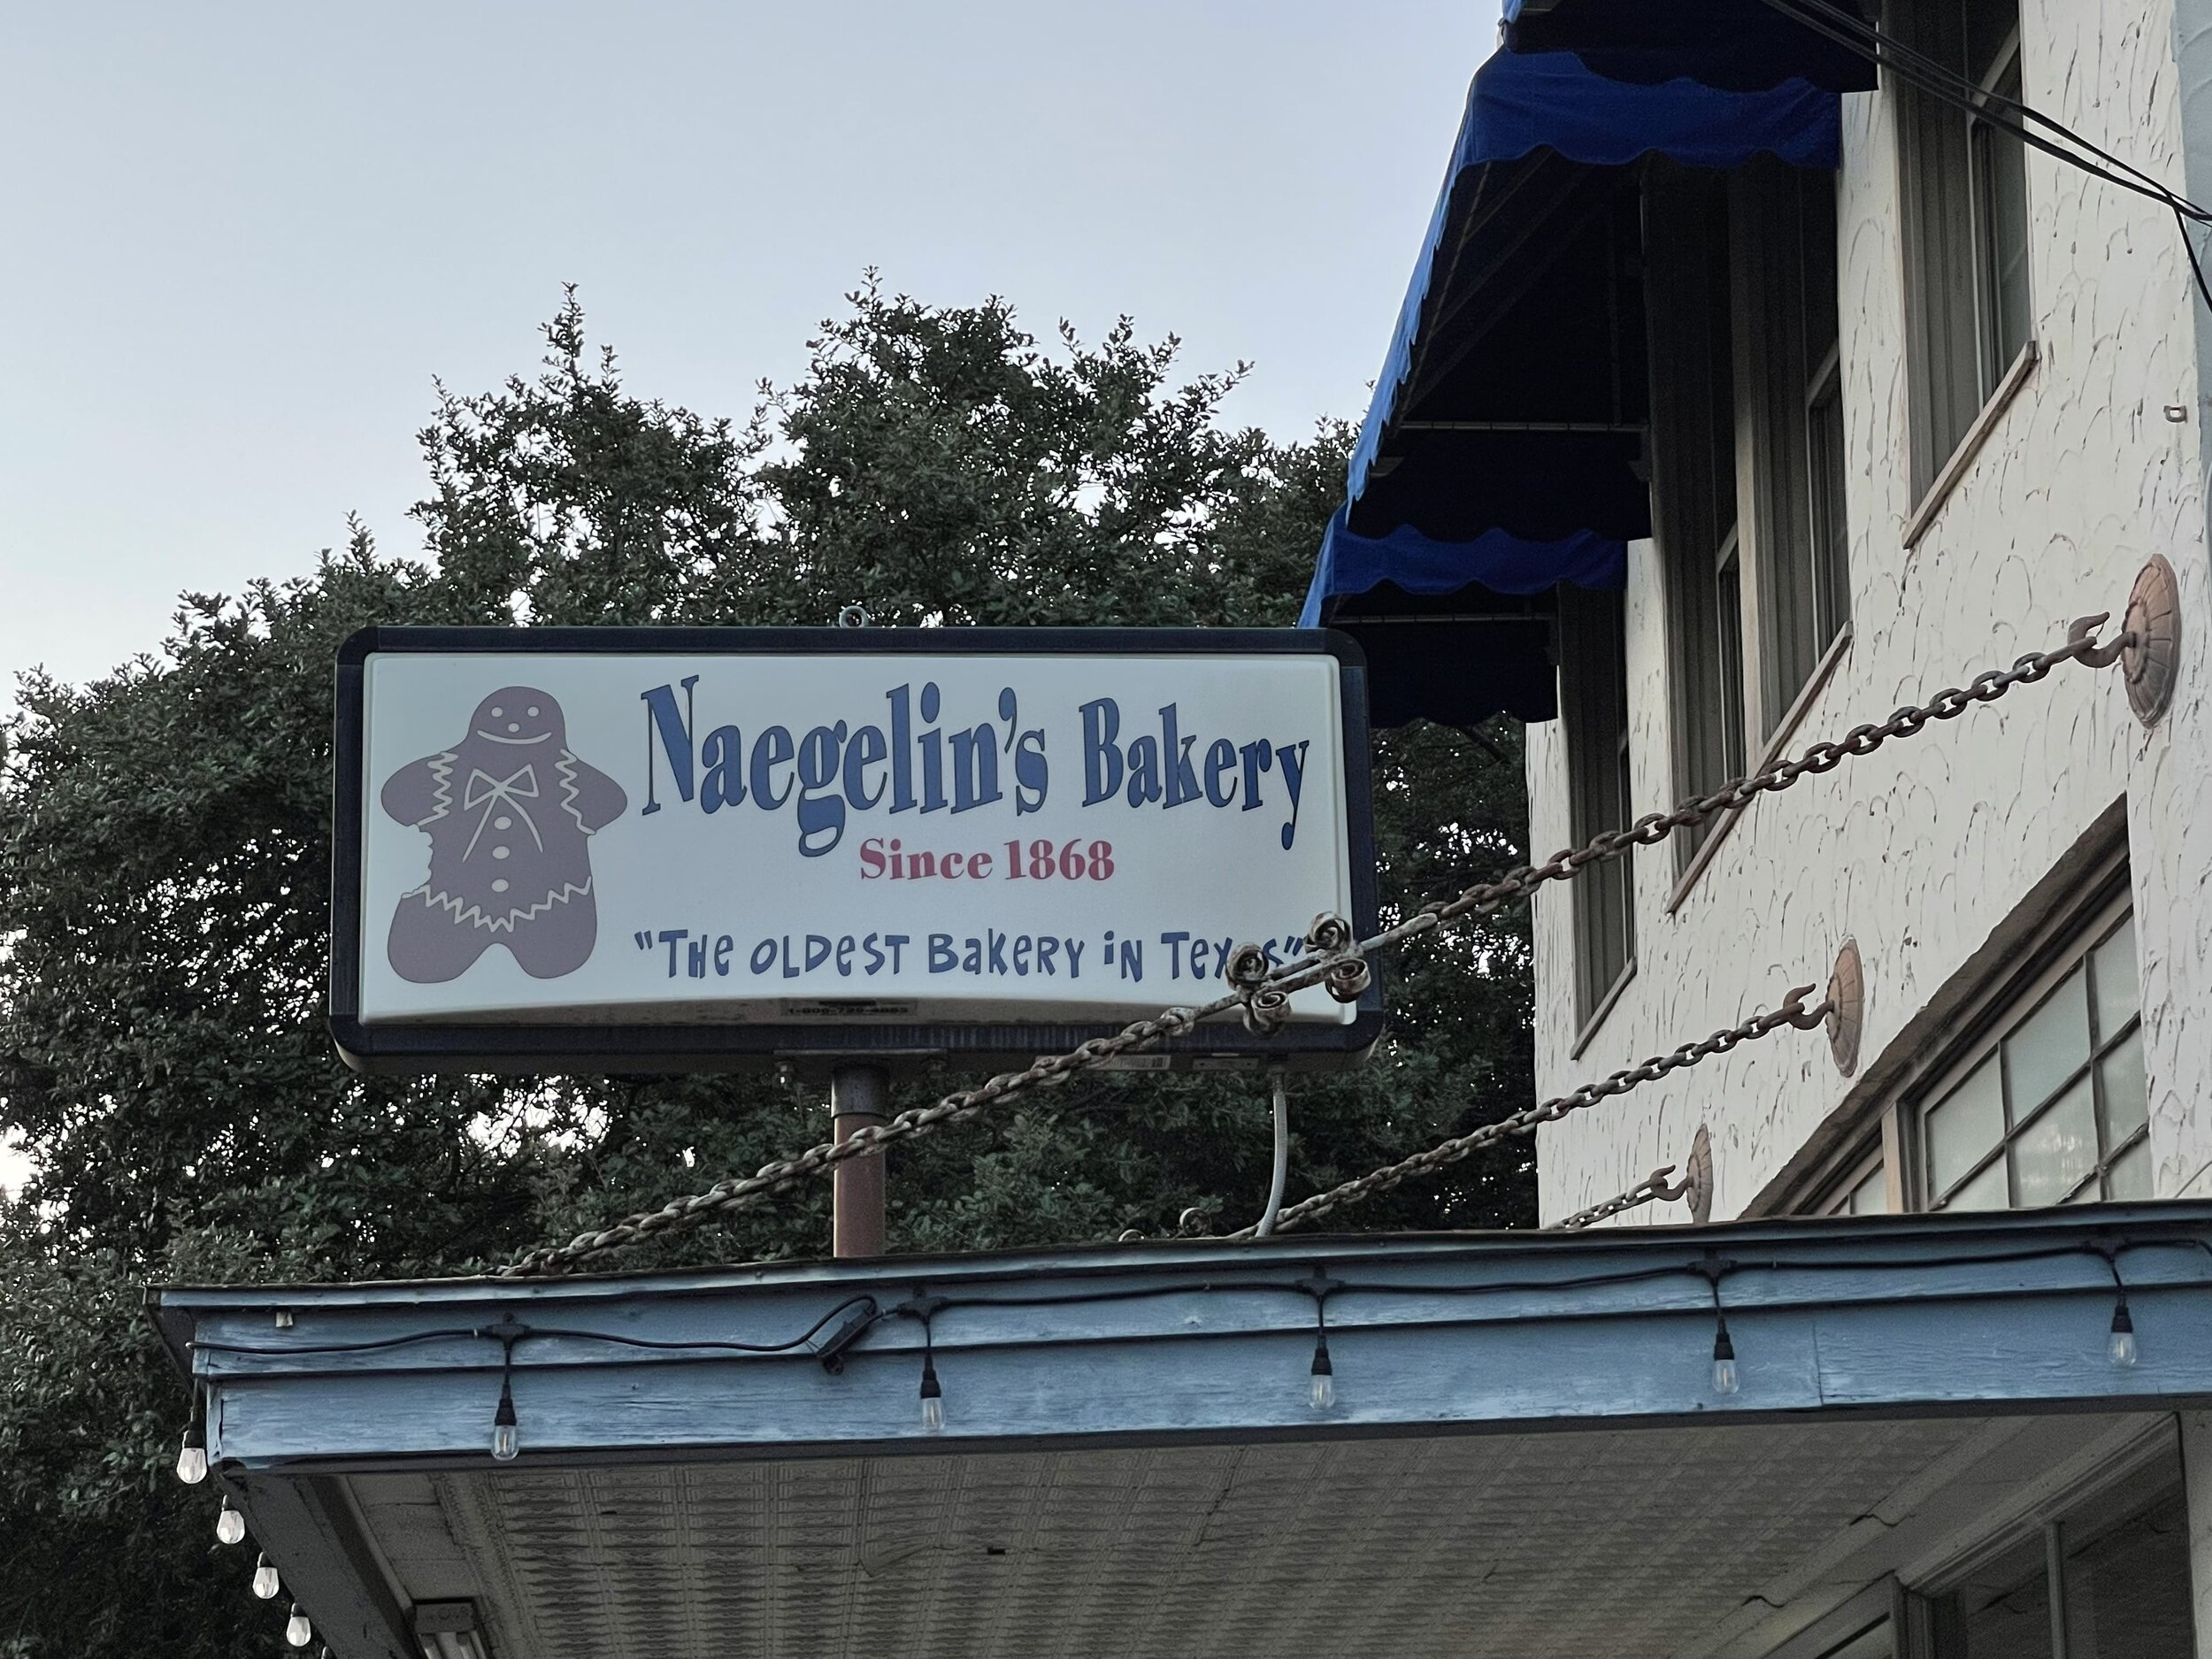 The oldest bakery in Texas, Naegelin's Bakery